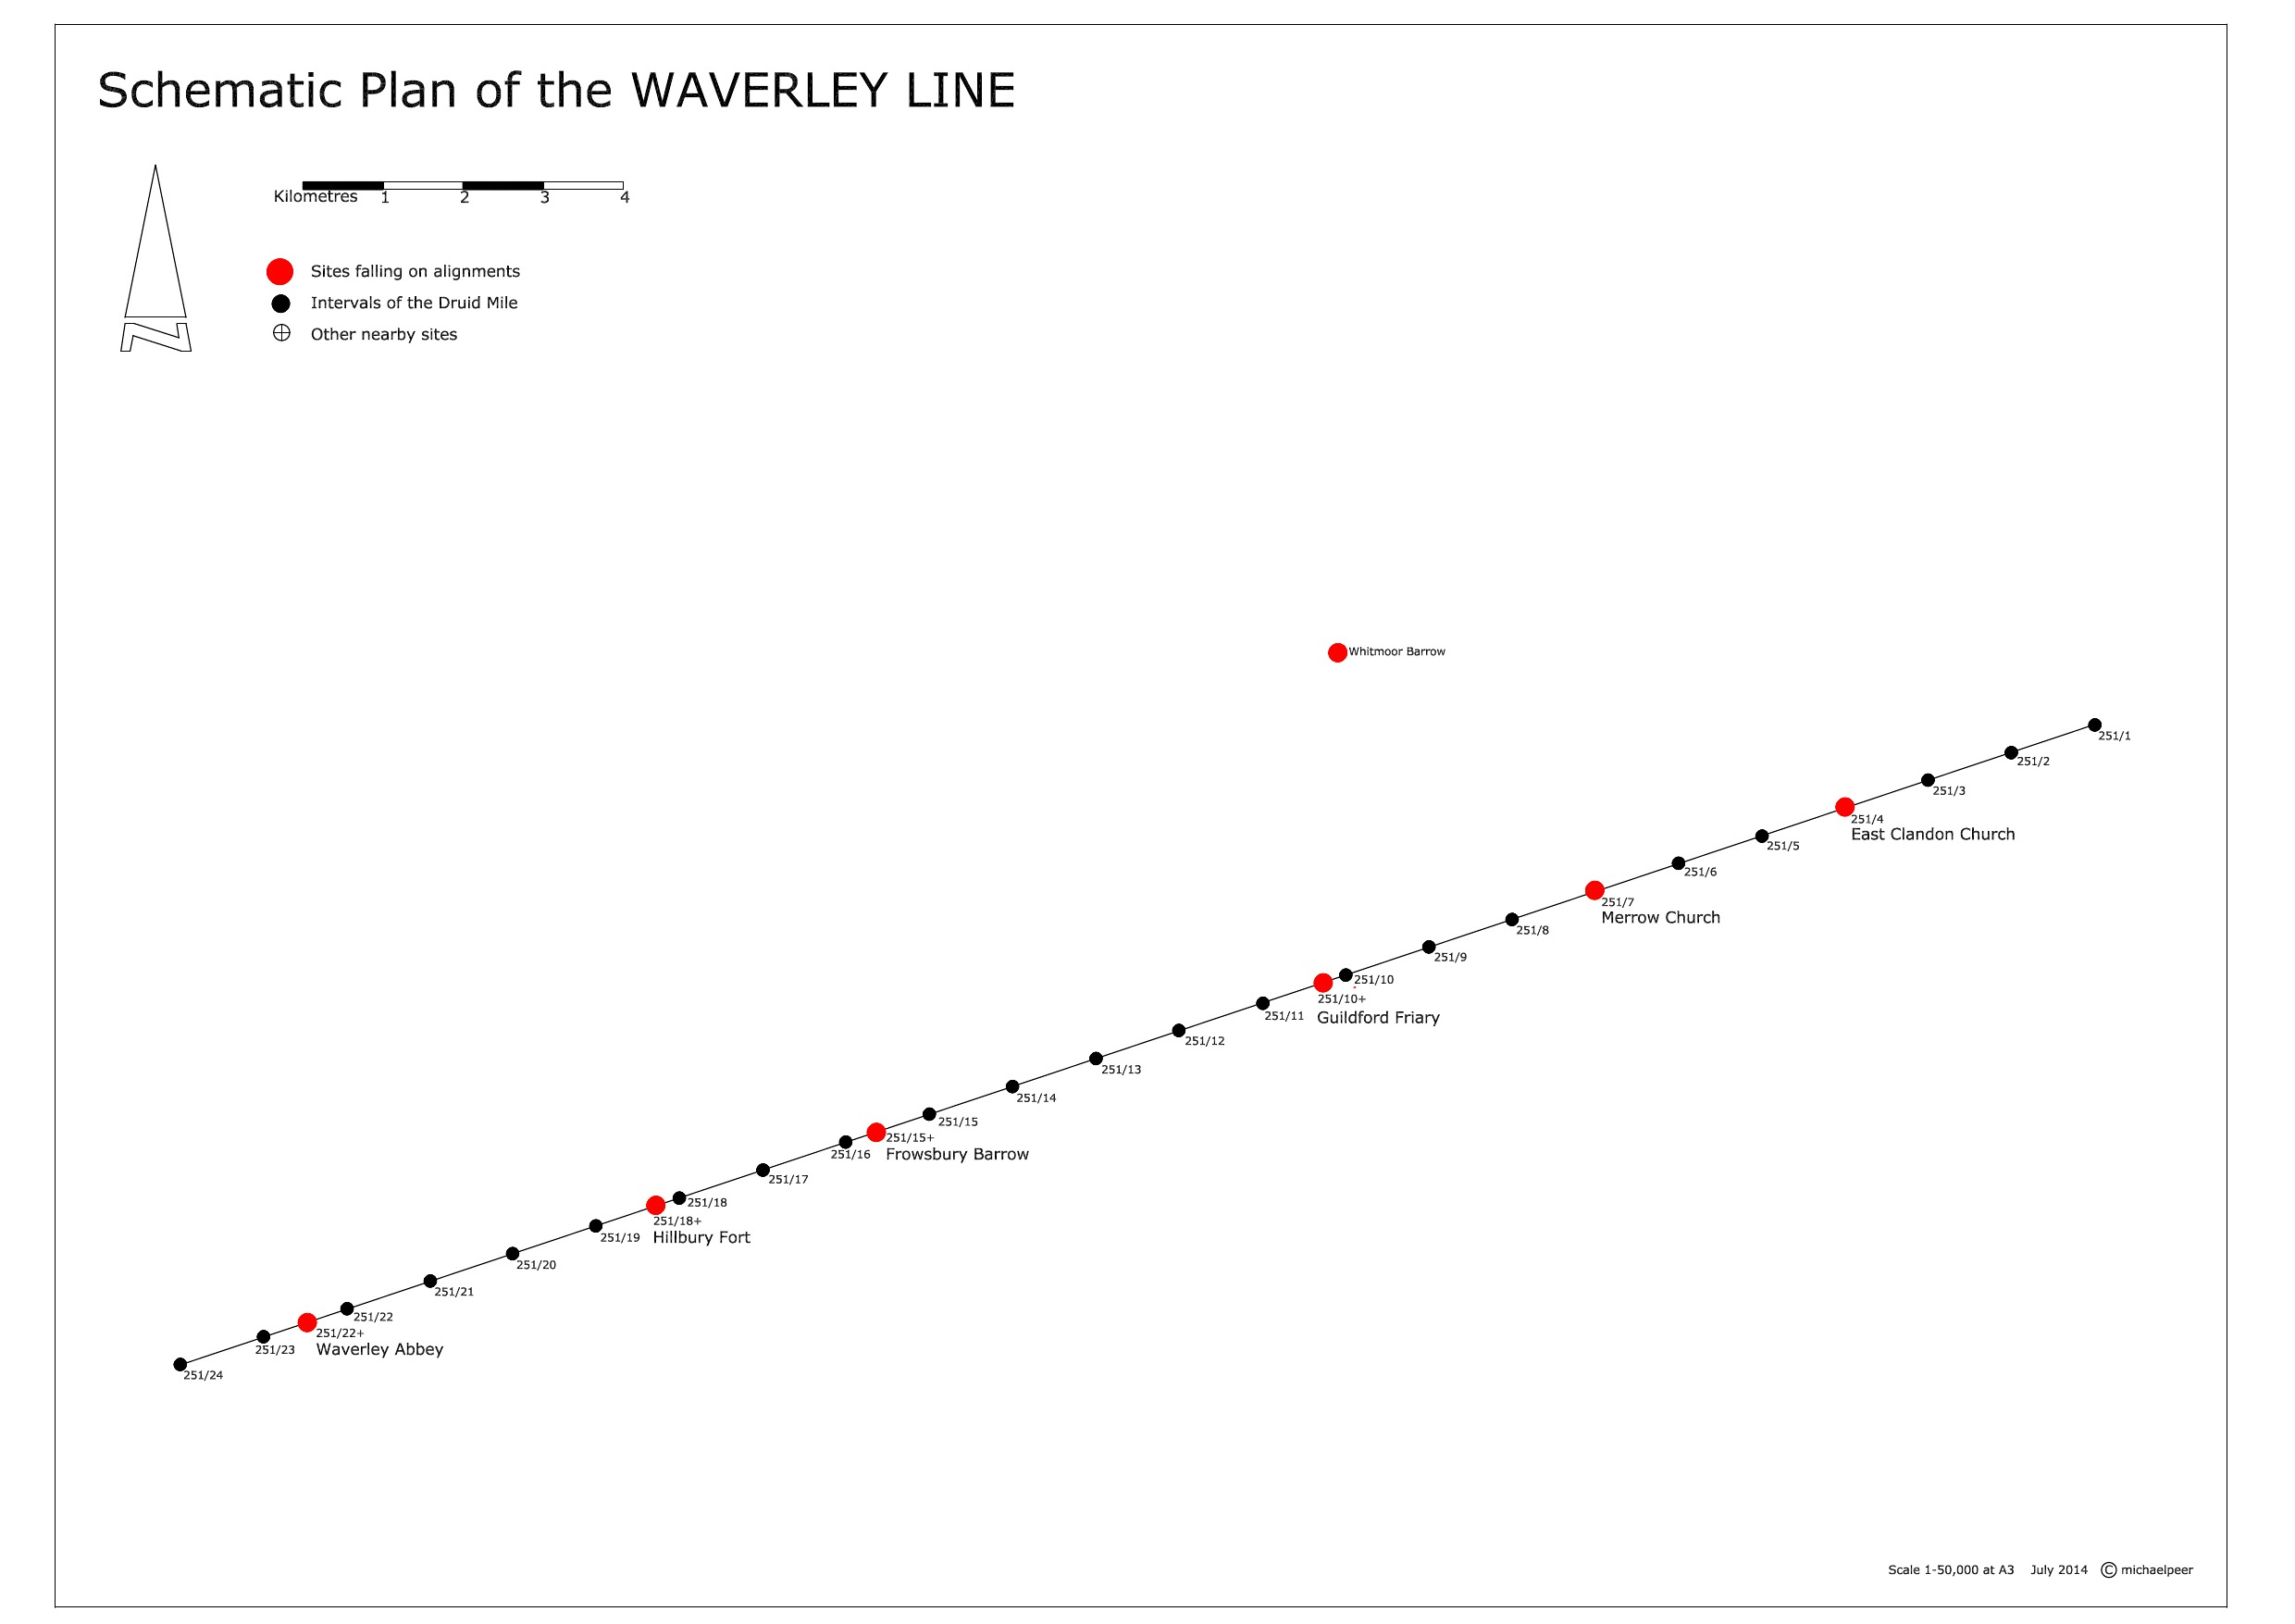 SCALE PLAN OF THE WAVERLEY LINE